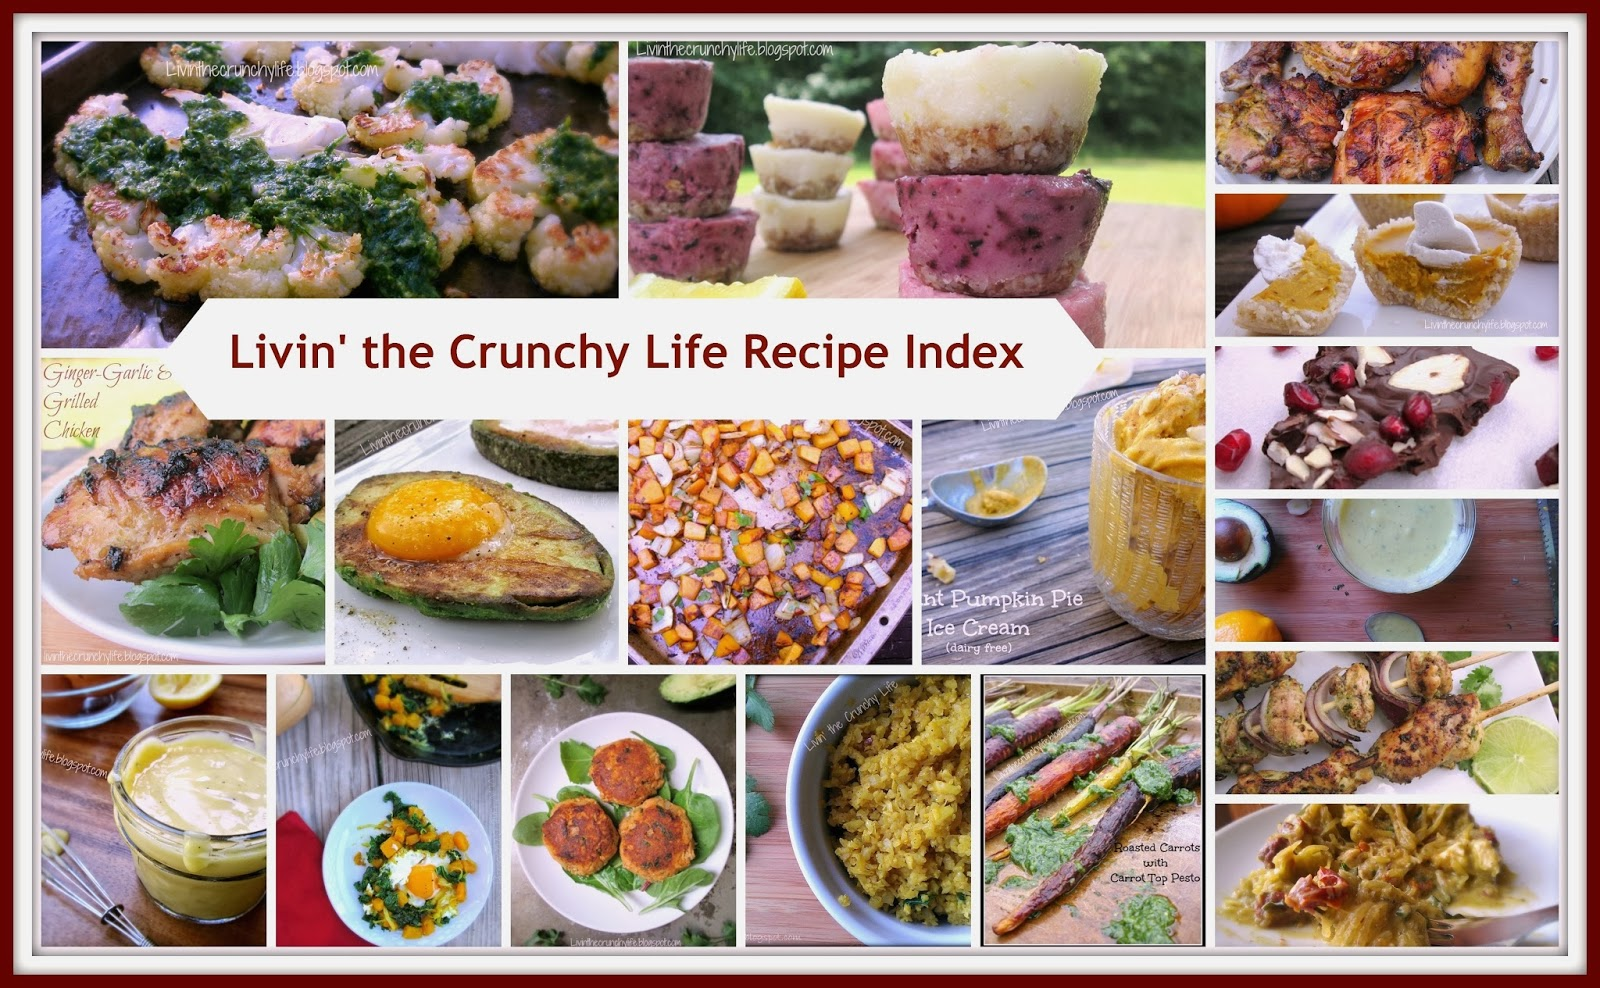 Livin the Crunchy Life Recipe Index (paleo, grain/gluten-free, mostly dairy free)